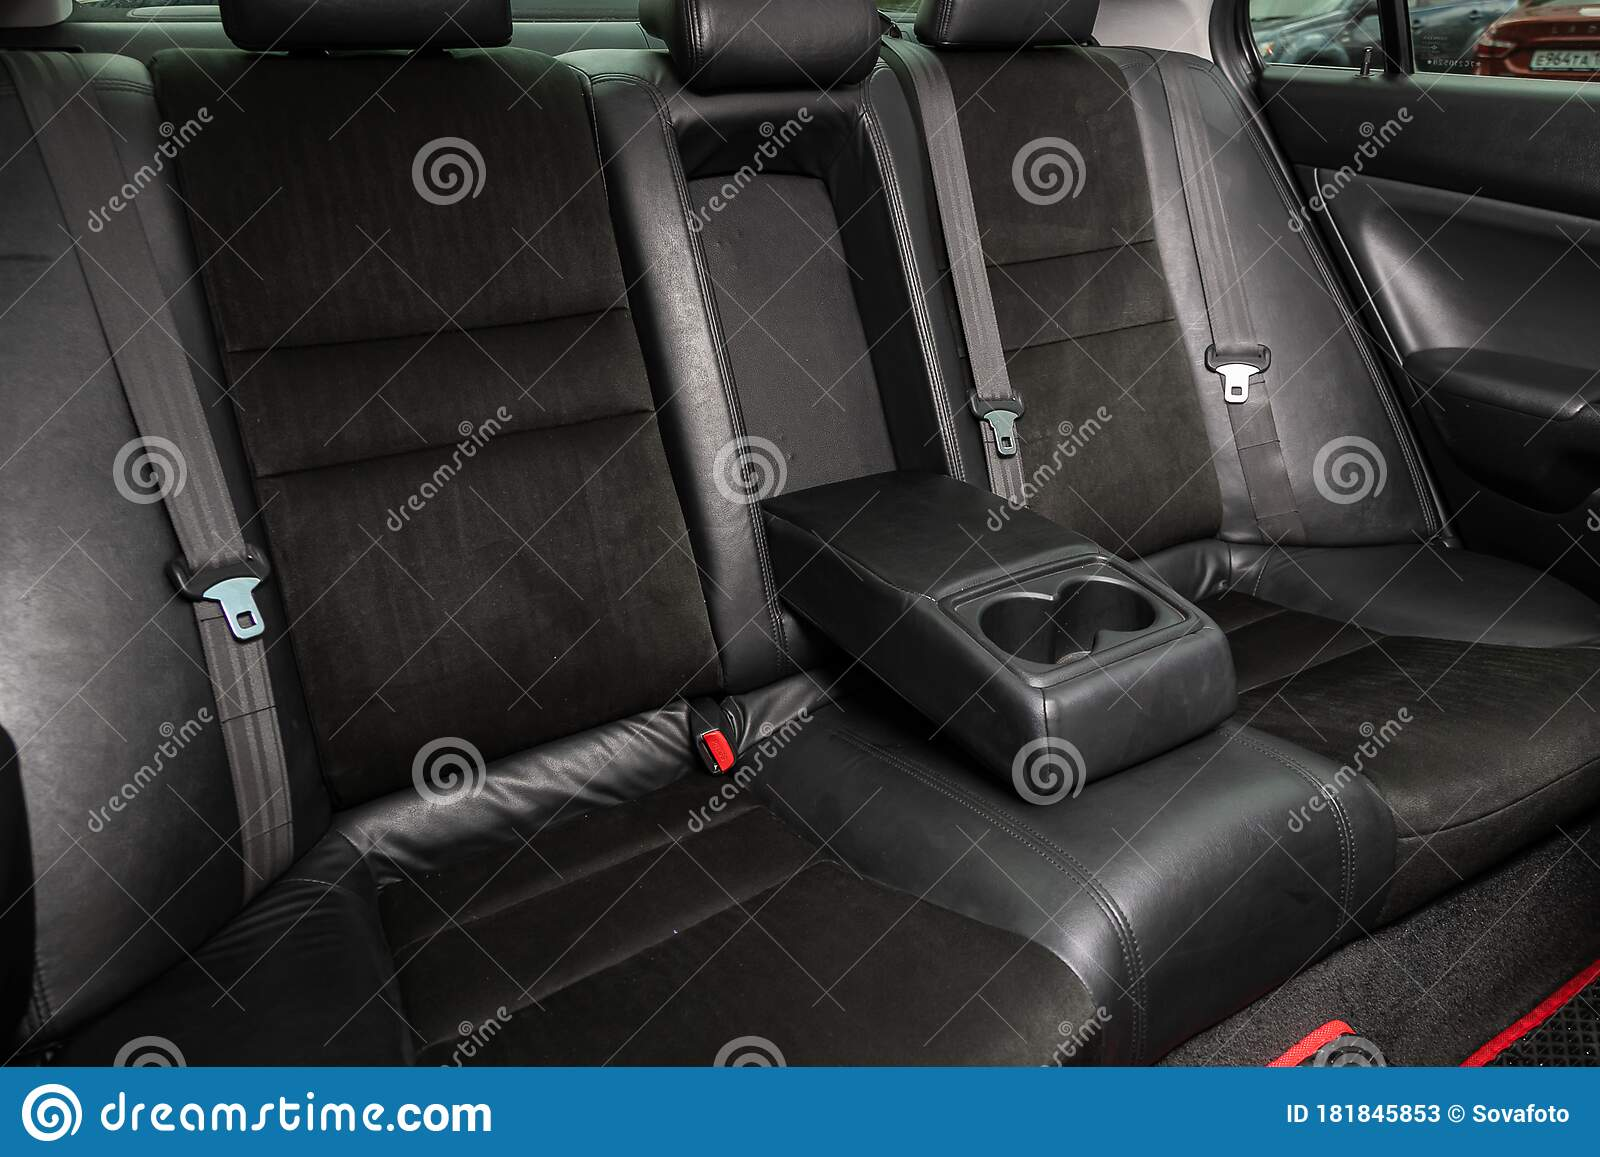 Novosibirsk Russia May 02 2020 Honda Accord Stock Image Image Of Fabric Design 181845853